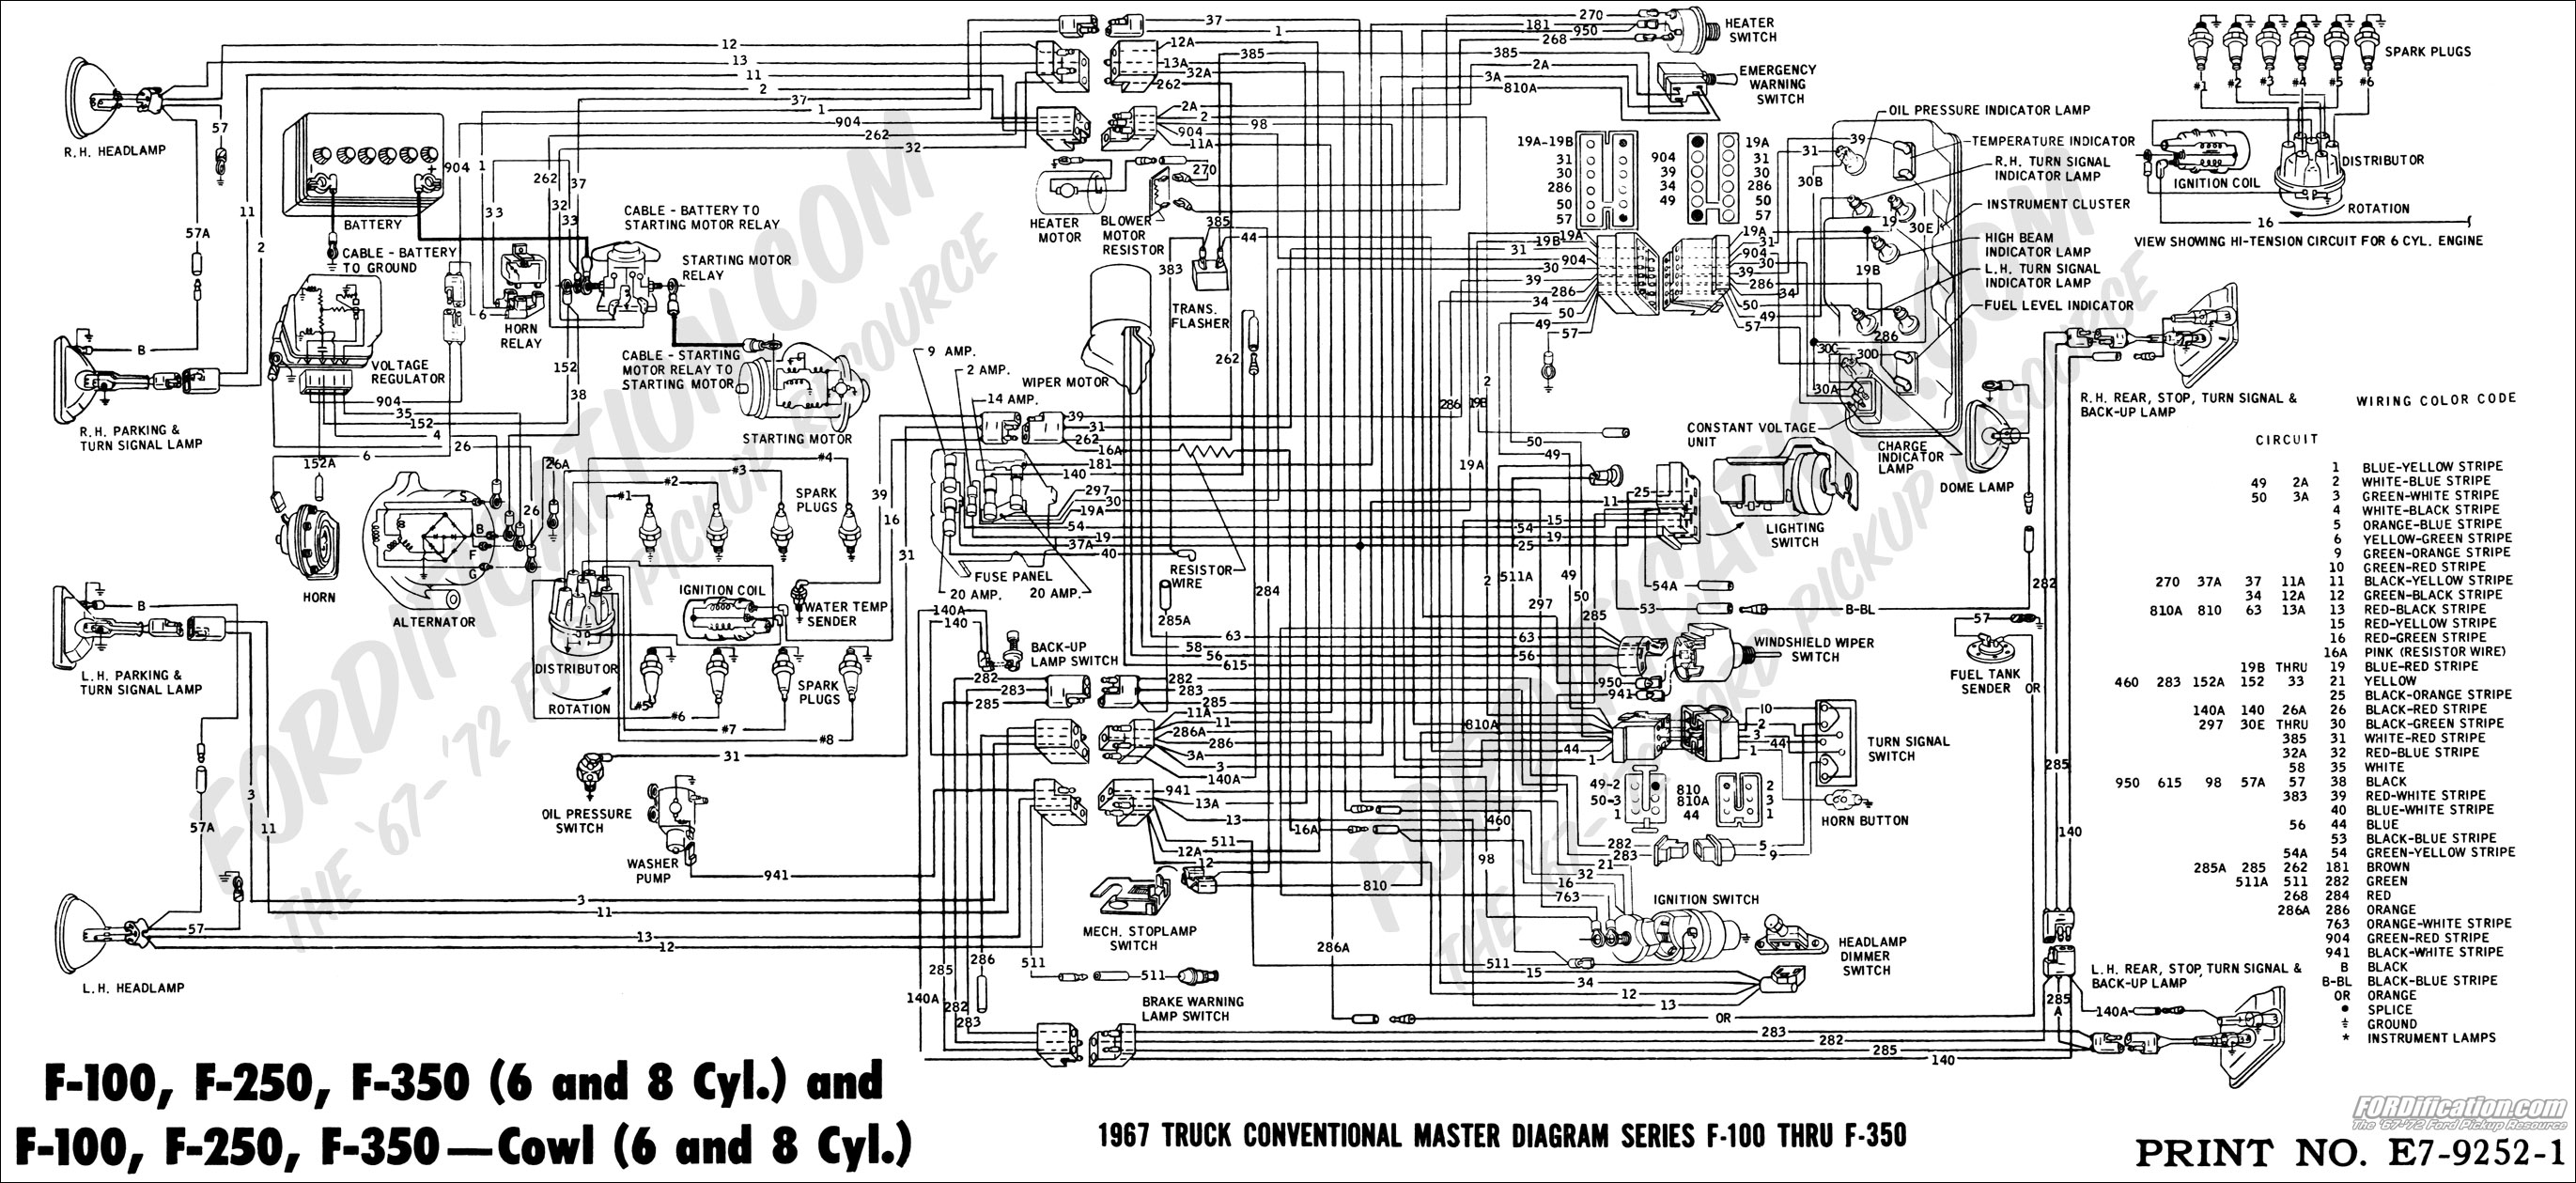 Ford Truck Technical Drawings and Schematics - Section H - Wiring ...